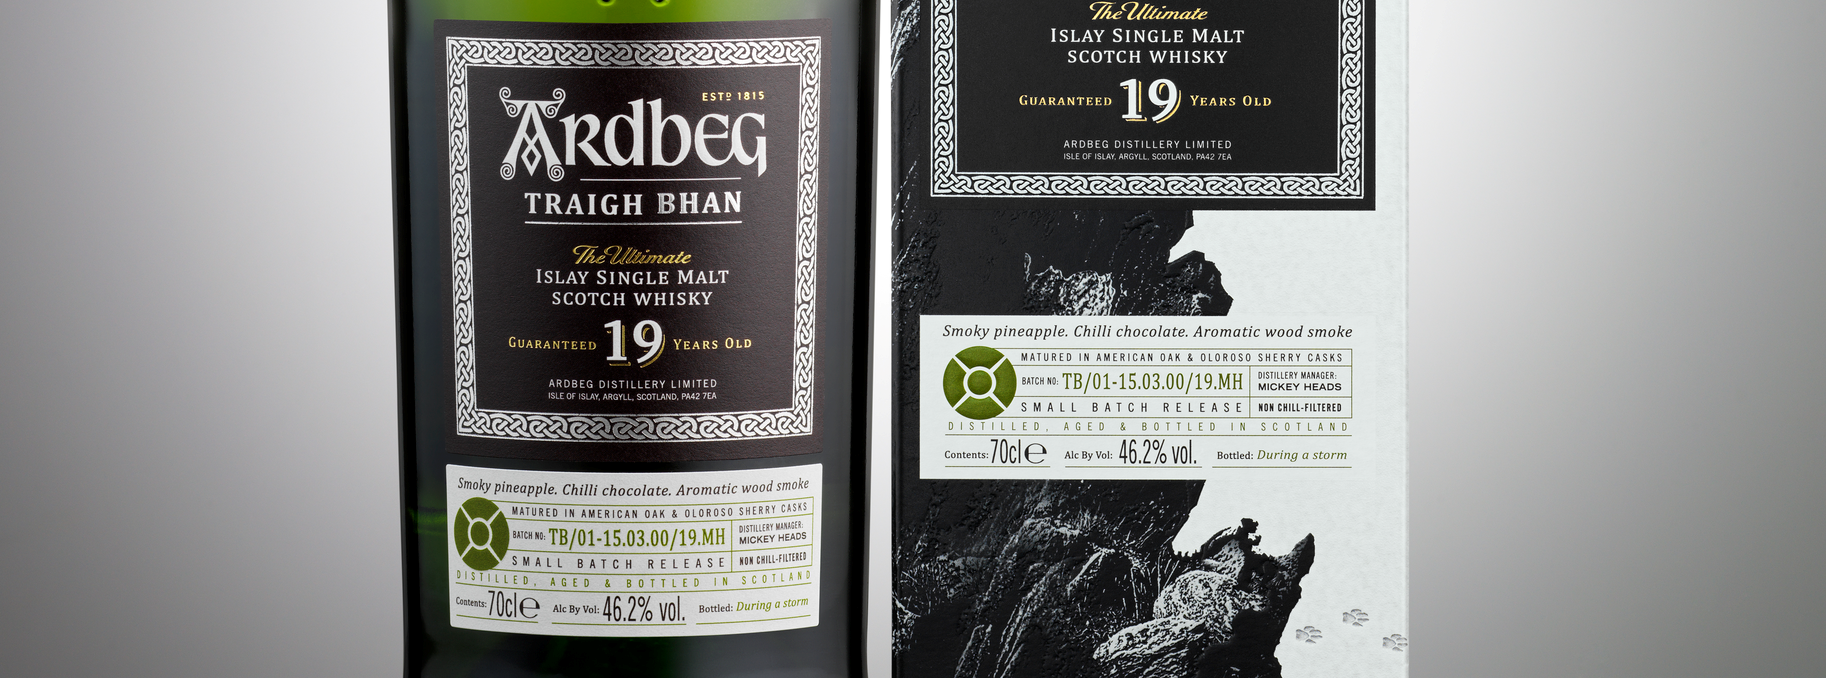 Ardbeg adds 19 year old expression to core range - Master of